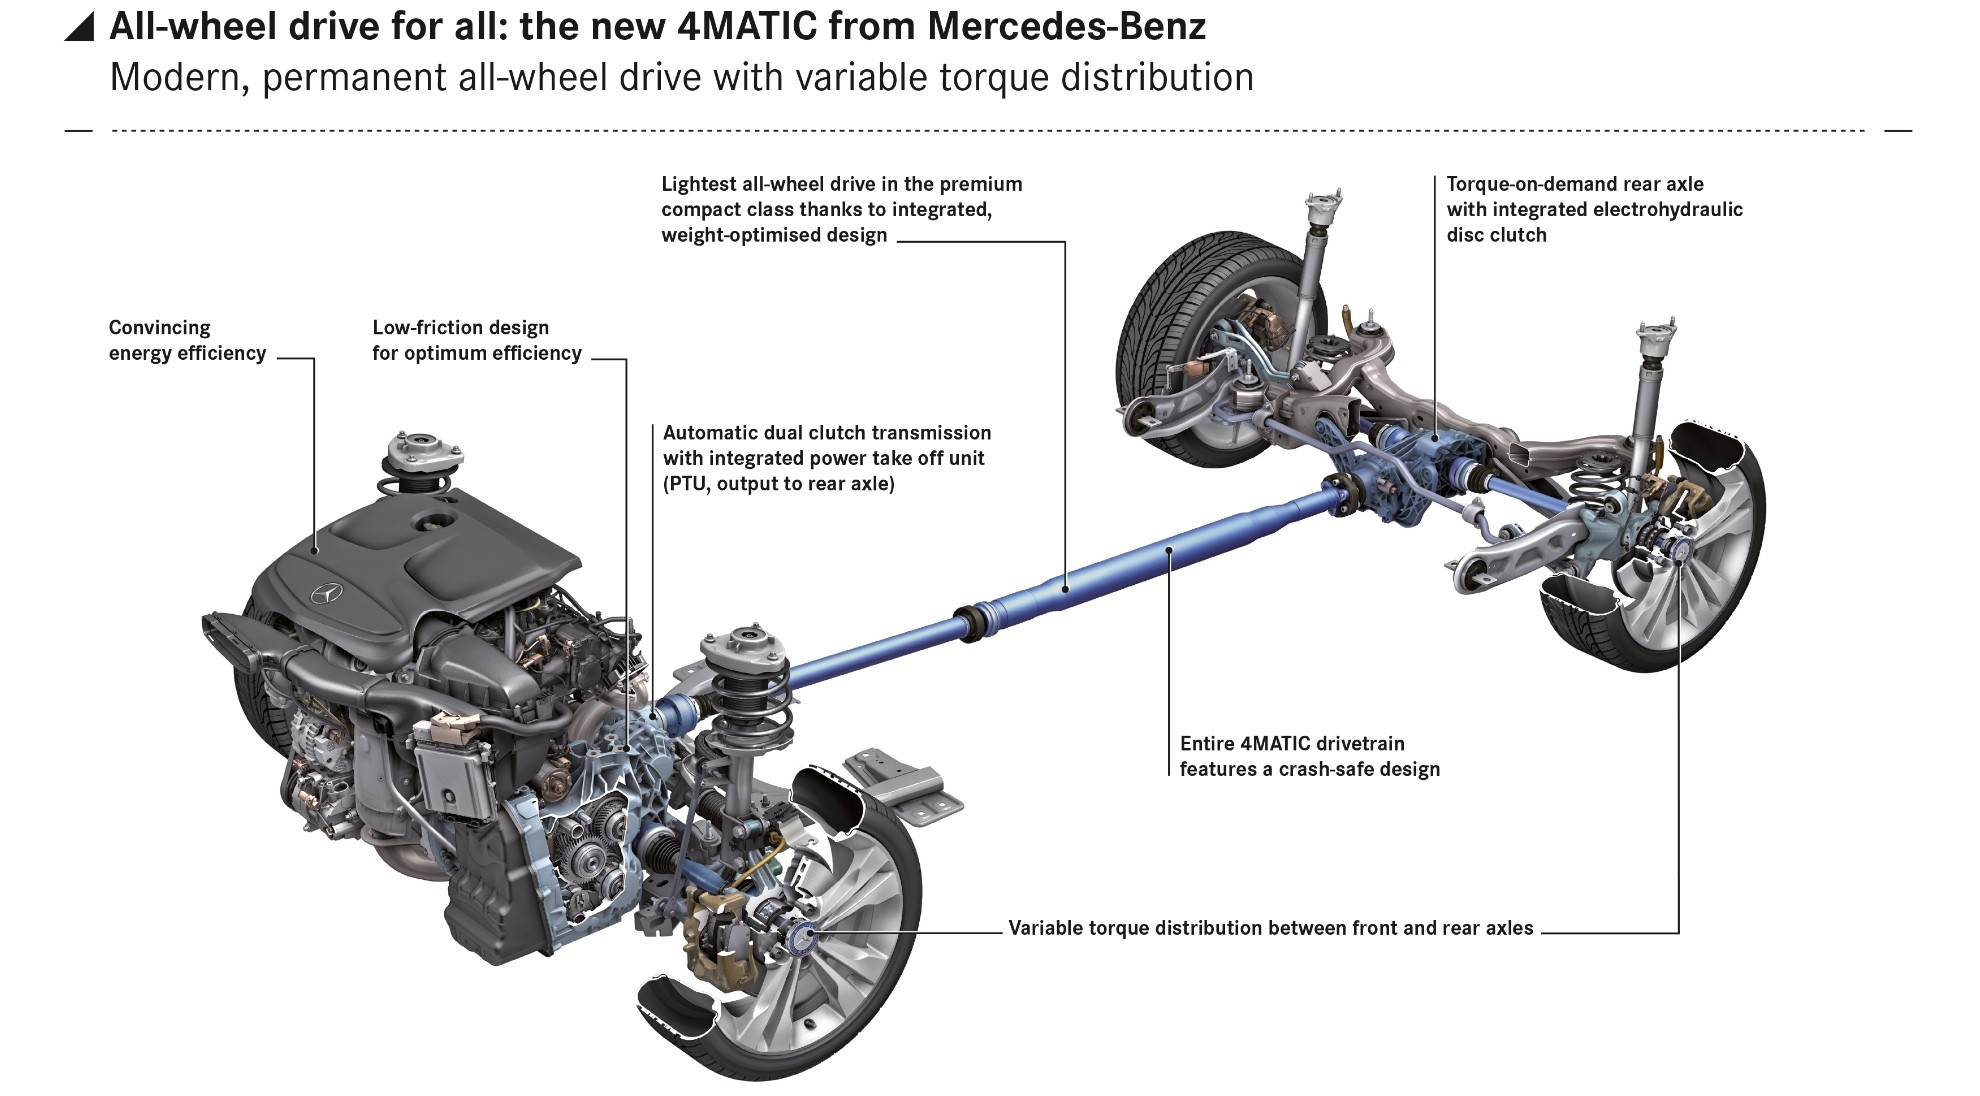 Mercedes-Benz's 4Matic System - A Brief Guide - autoevolution